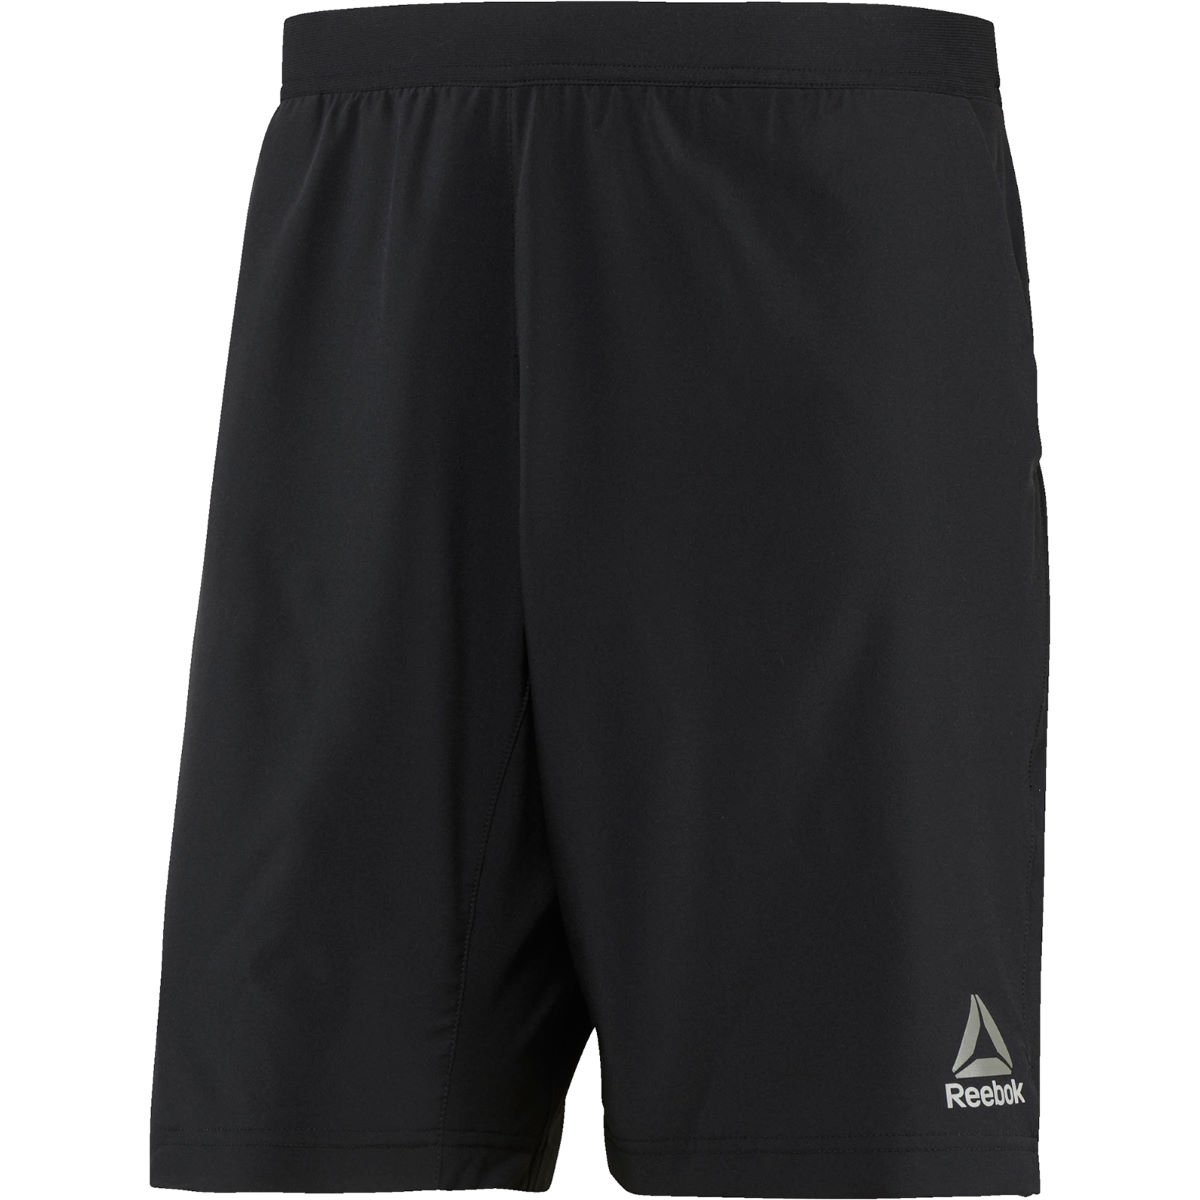 Short Reebok Speedwick Speed Gym - 2XL Noir Shorts de running